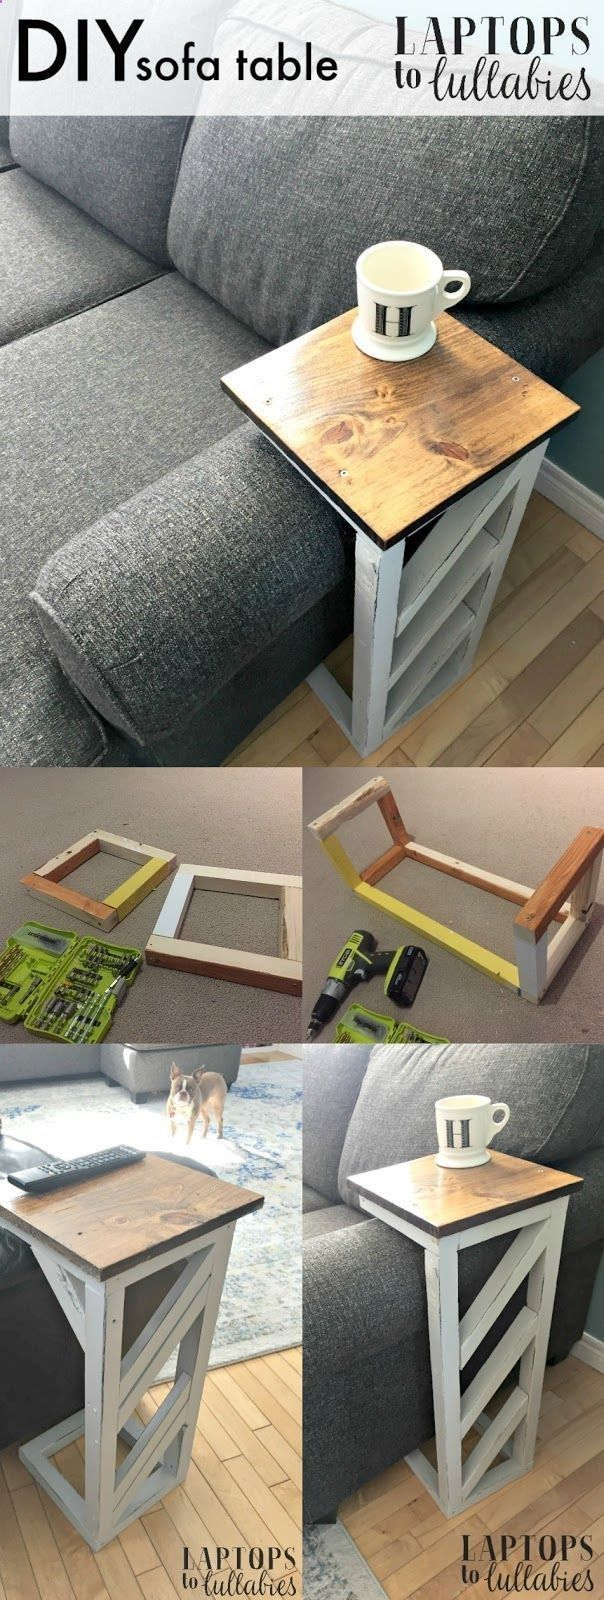 Teds Wood Working - DIY Life Hacks Crafts : Laptops to Lullabies: Easy DIY sofa tables - Get A Lifetime Of Project Ideas & Inspiration! #apartmentlivingroomdesigns